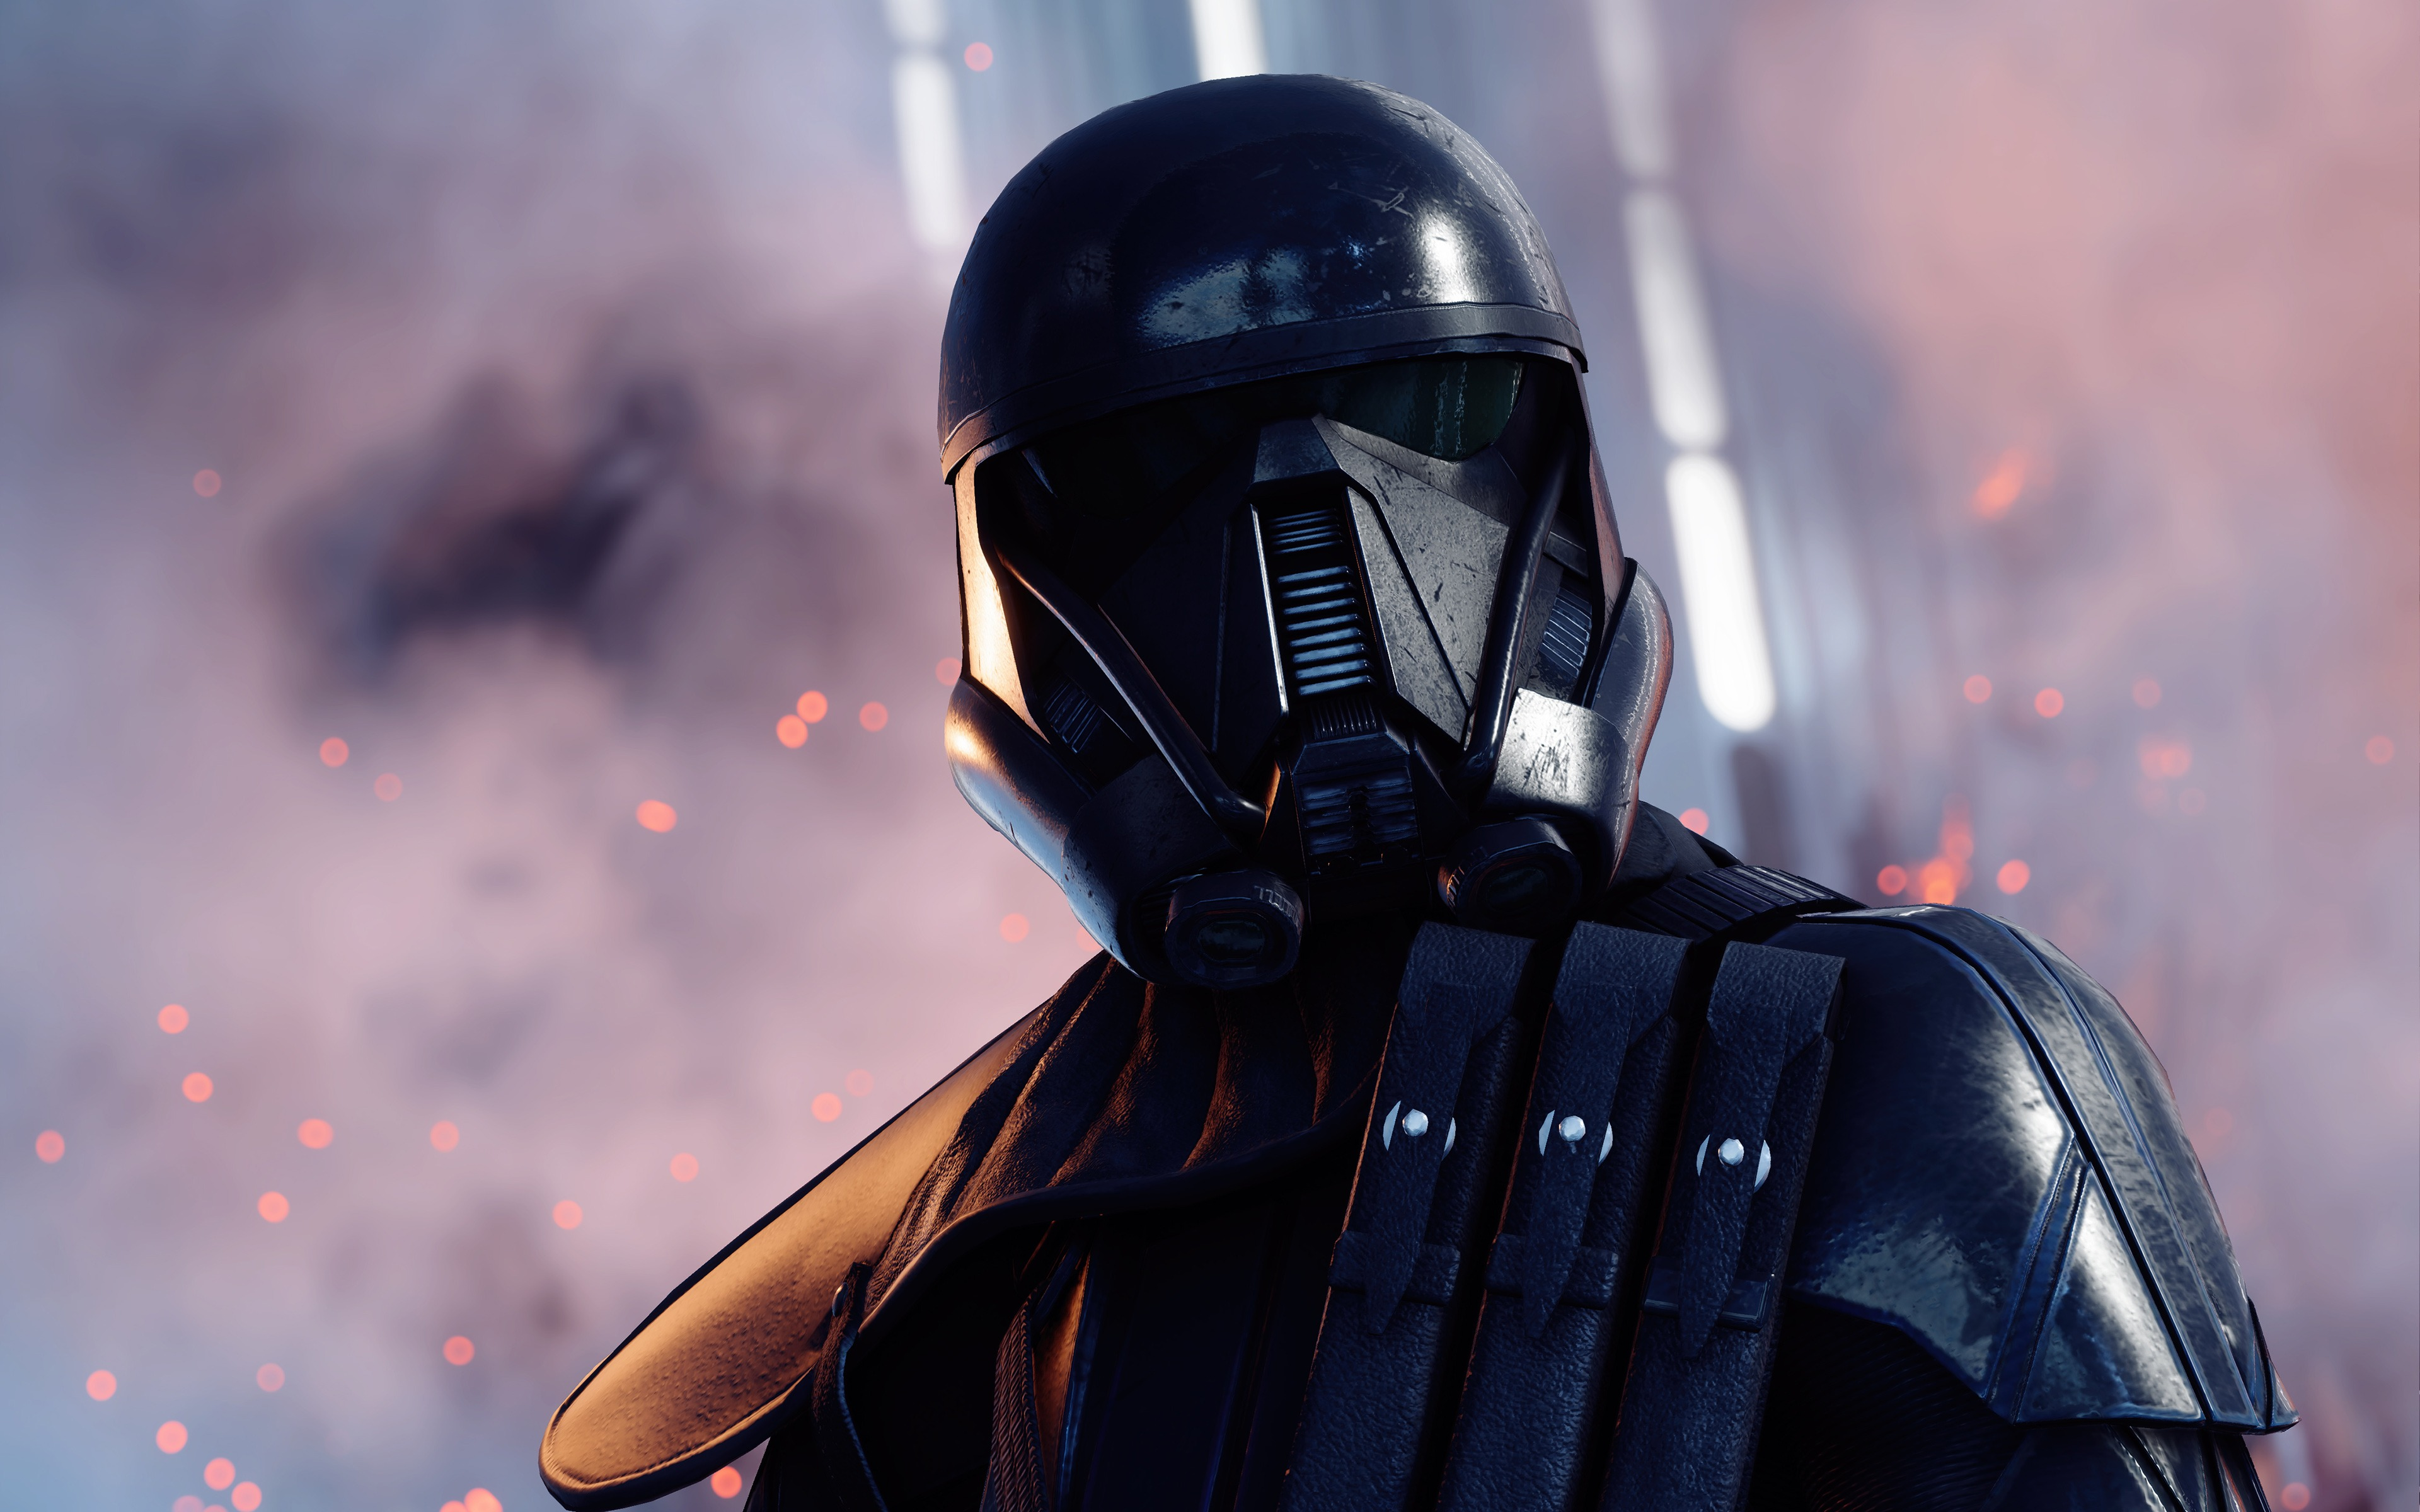 Star Wars Battlefront Ii 2017 4k Hd Game Preview 10wallpaper Com